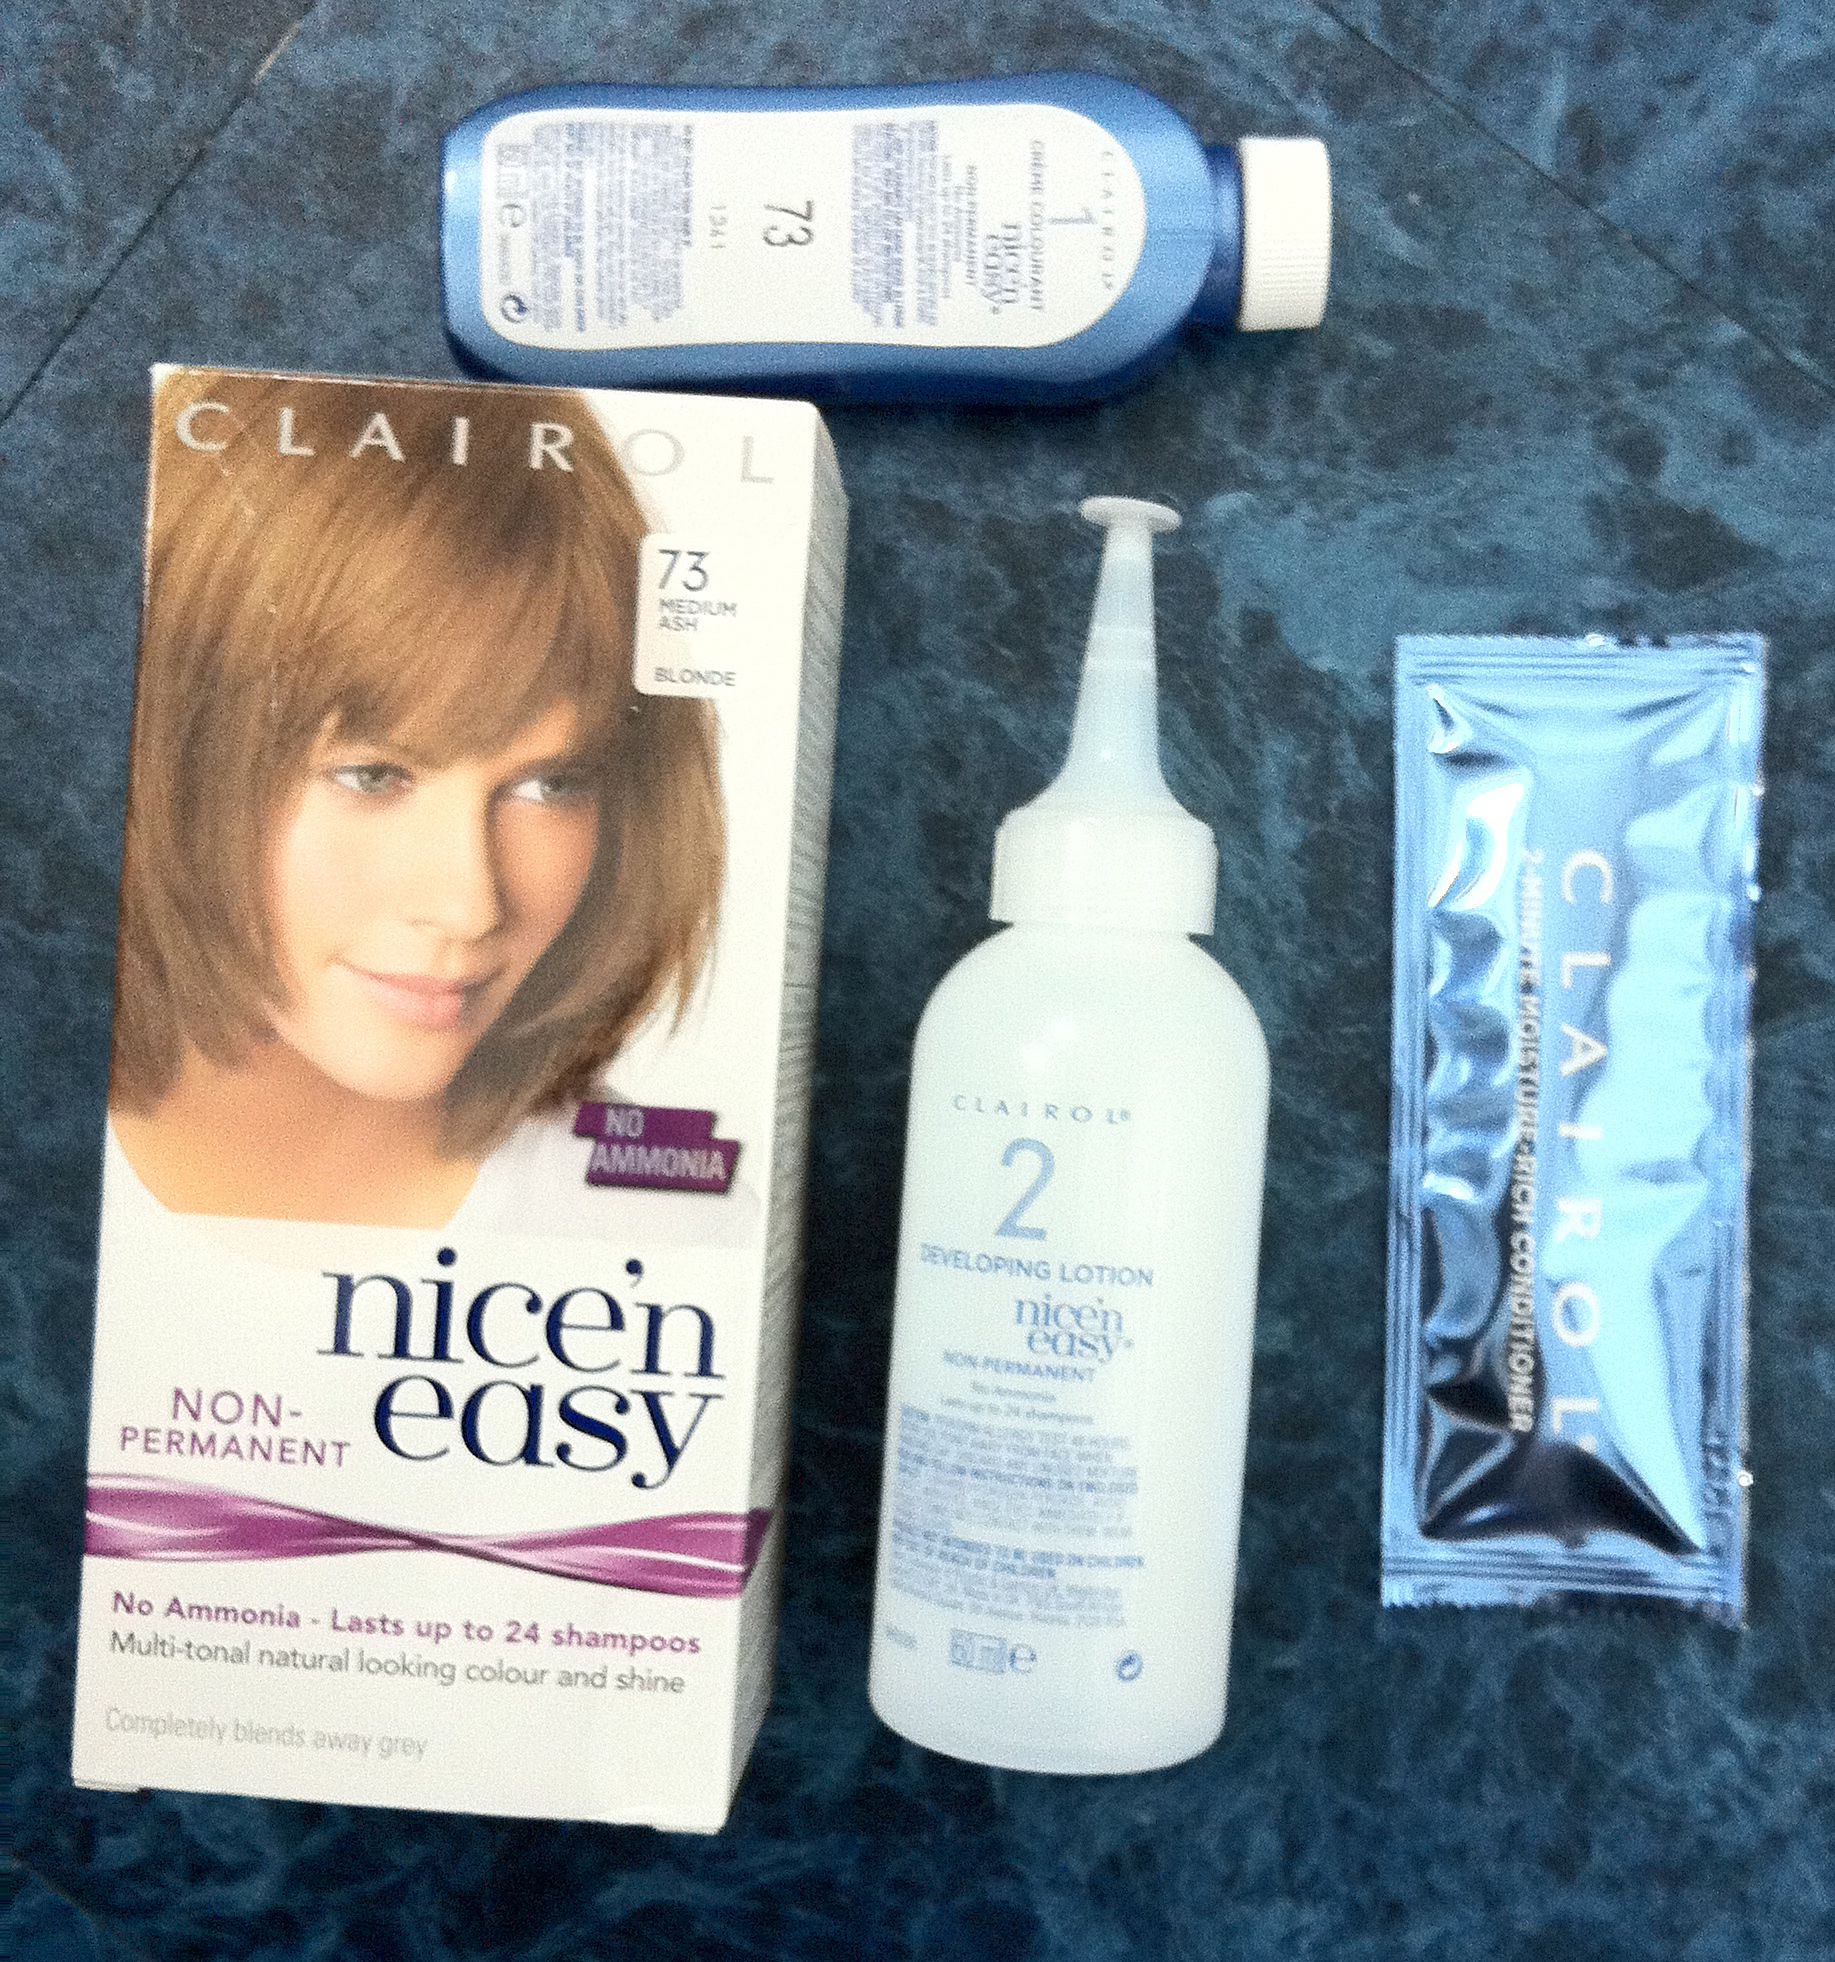 Clairol nice 'n easy frost & tip maximum blonde highlights reviews.